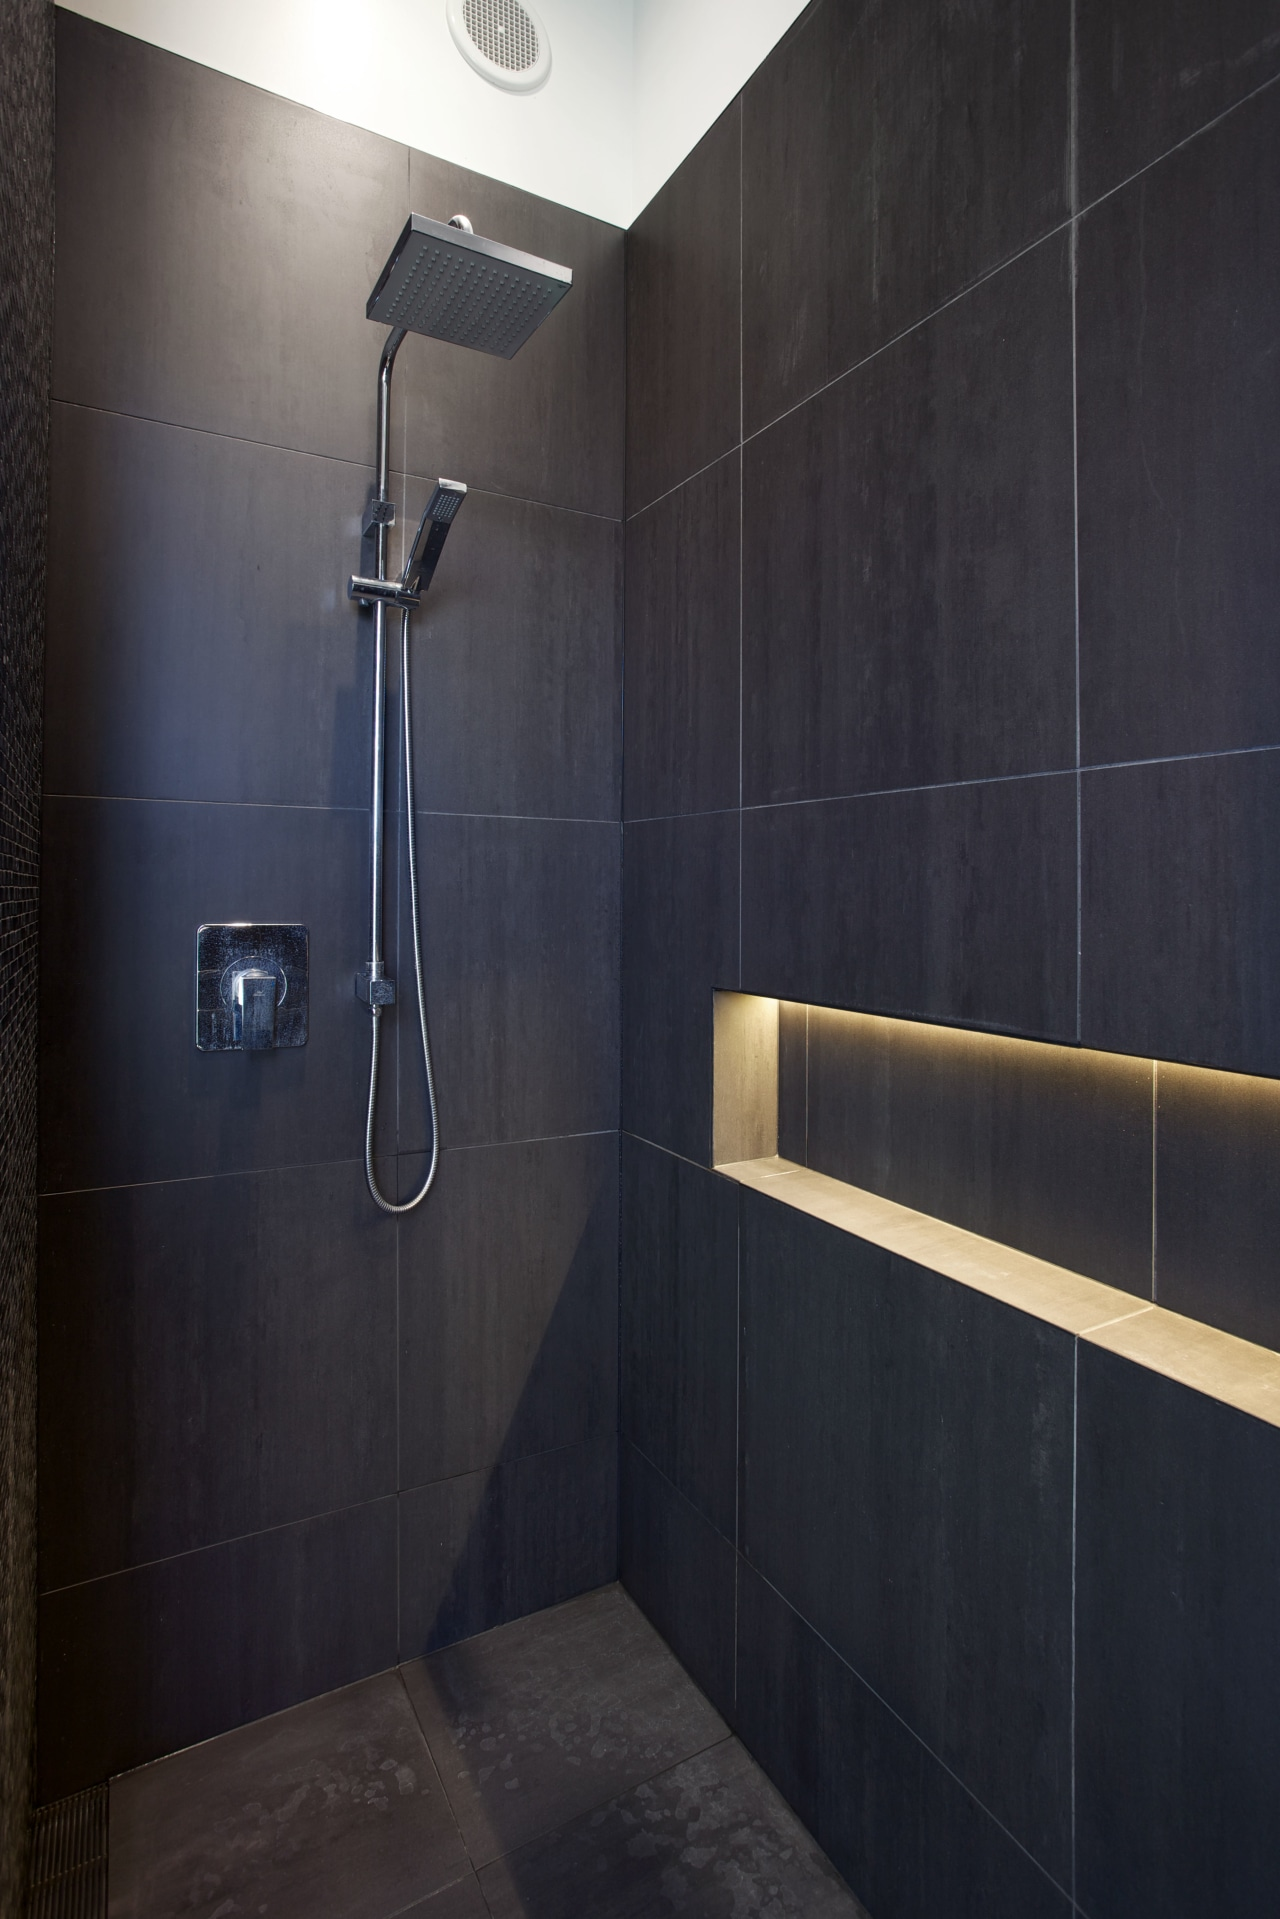 With the right lighting, you can make your architecture, bathroom, floor, interior design, light, lighting, plumbing fixture, room, shower, tile, wall, black